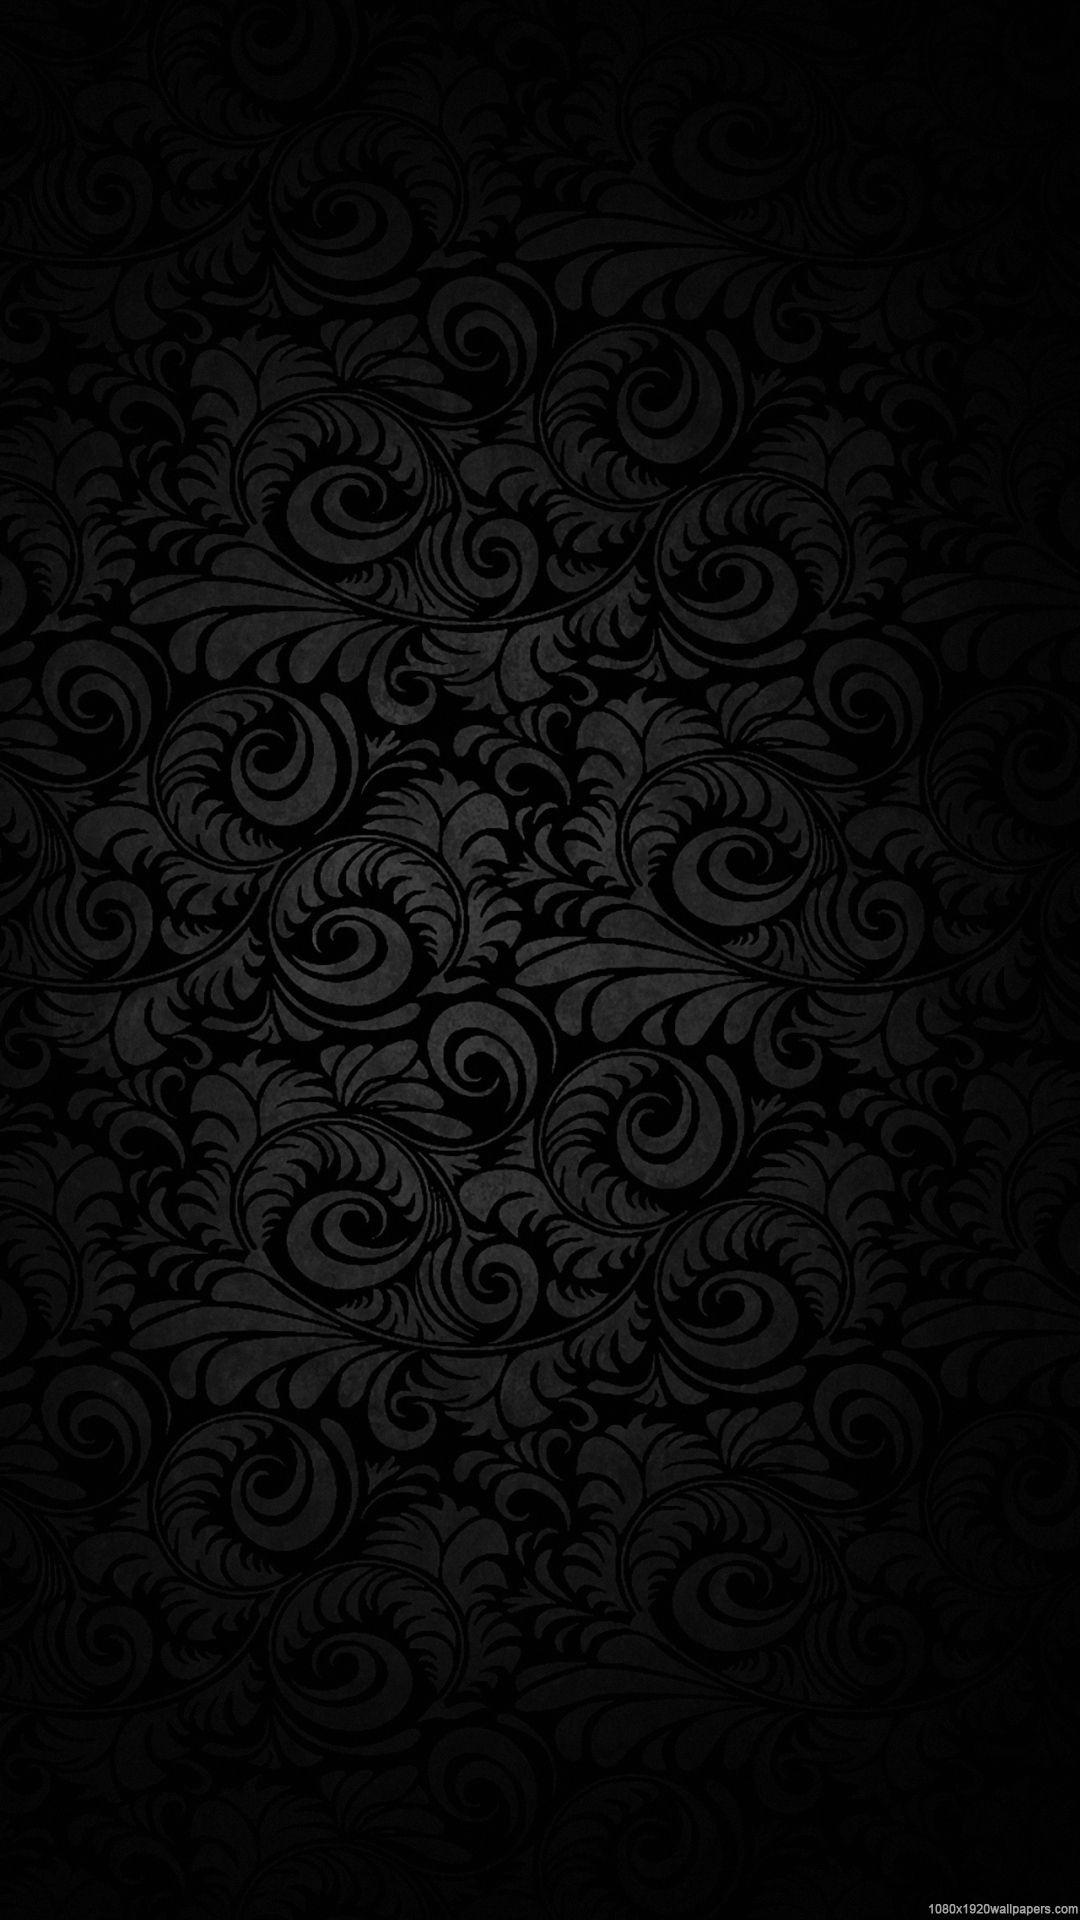 Wallpapers HD 1080p Mobile 1080x1920